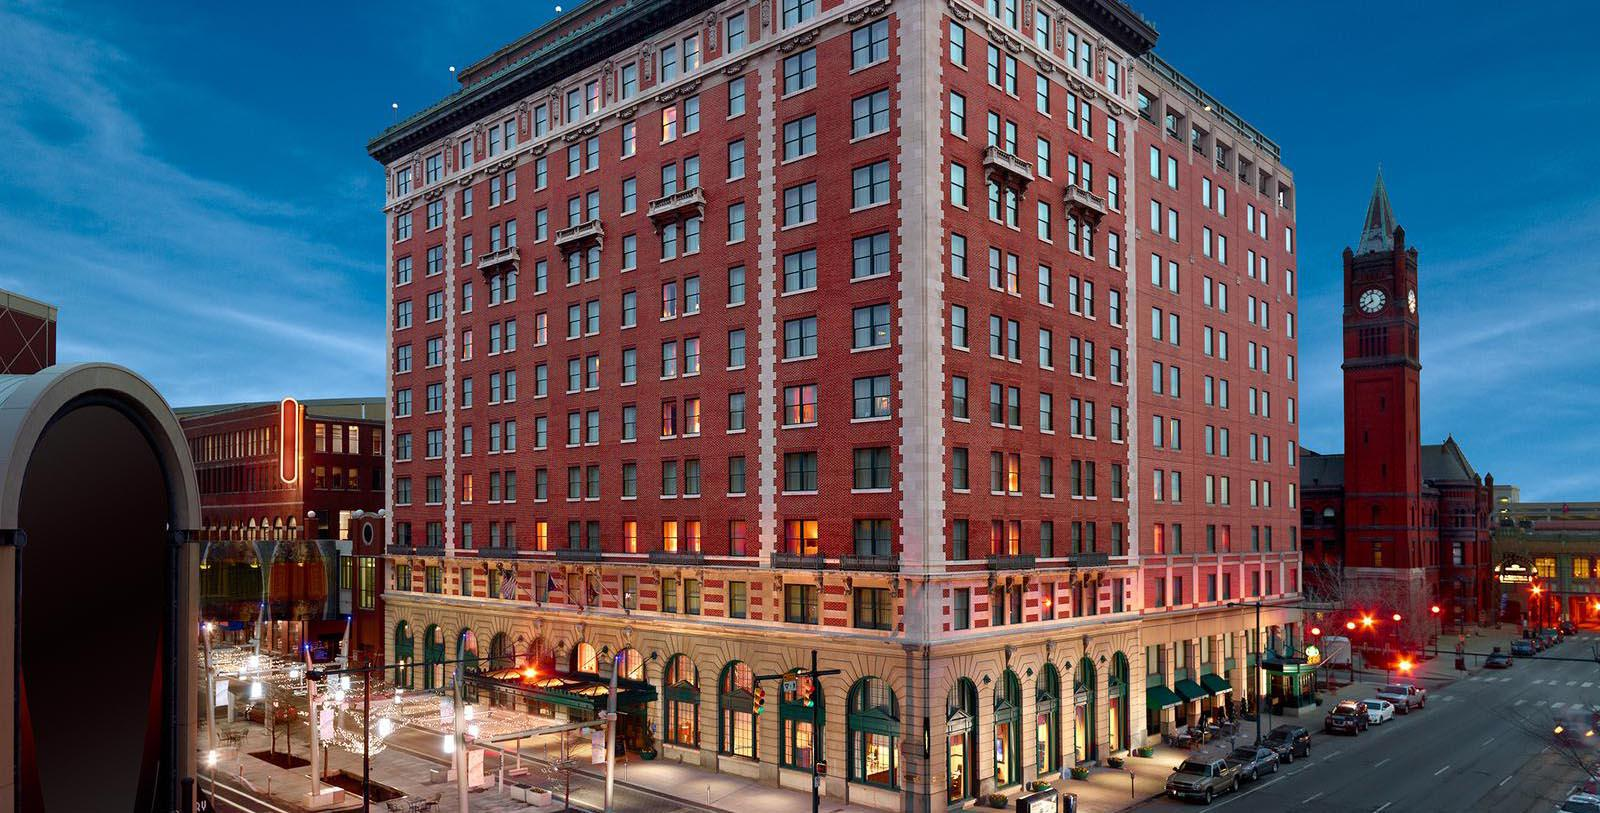 Image of Exterior at Night, Omni Severin Hotel, Indianapolis, Indiana, 1913, Member of Historic Hotels of America, Special Offers, Discounted Rates, Families, Romantic Escape, Honeymoons, Anniversaries, Reunions